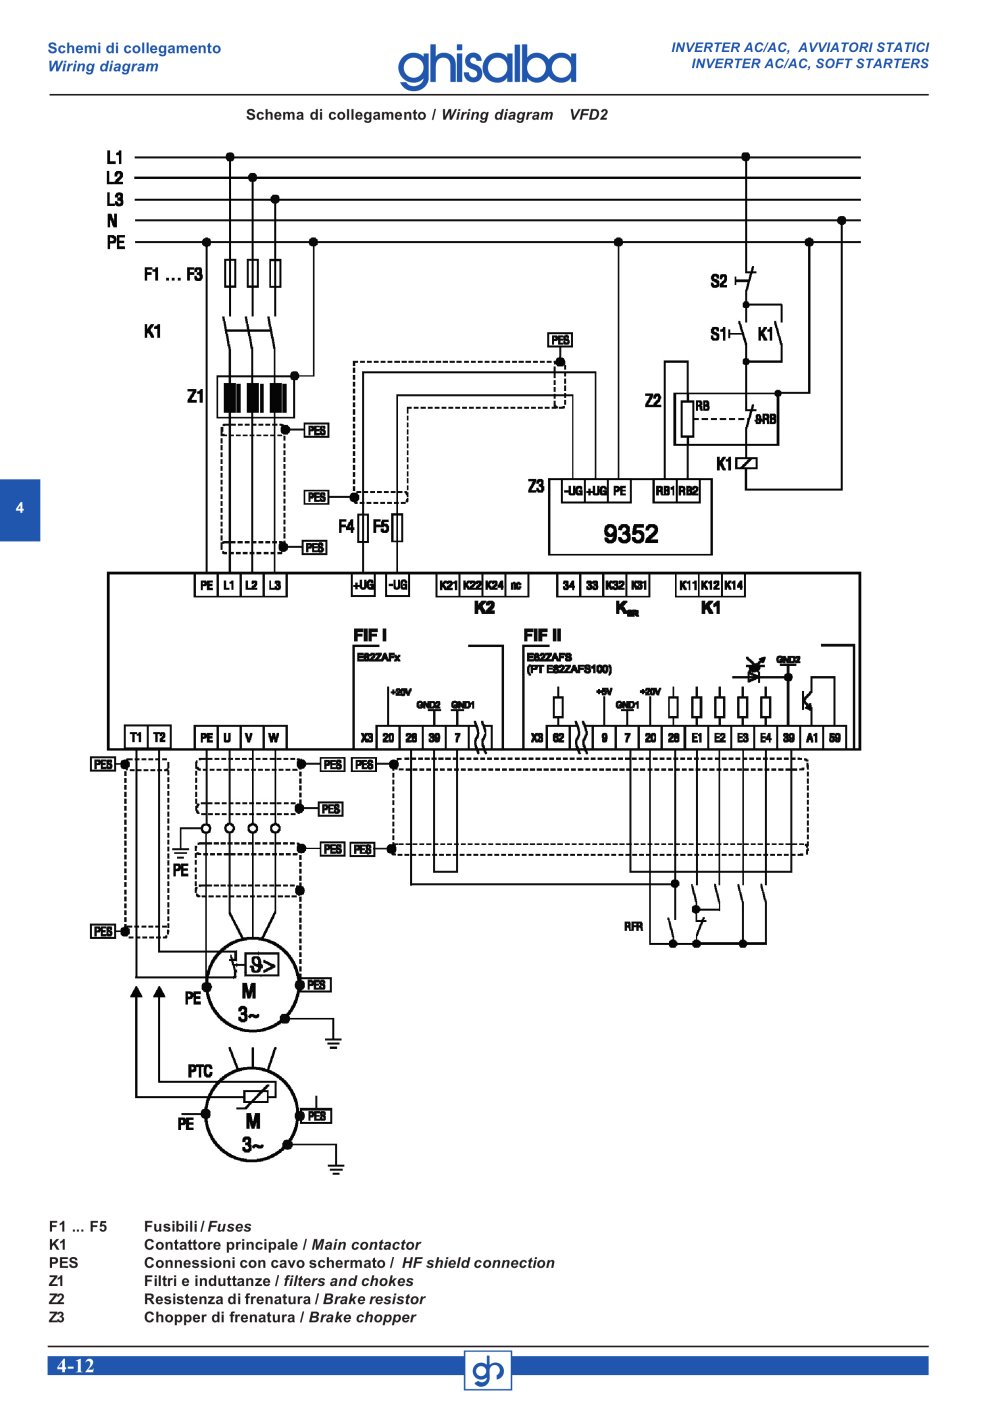 Electric Strike With Arduino Circuitry also Induction Motor Protection System moreover Dark Light Activated Relay in addition m To Vary The Light Intensity Of A 220v Bulb furthermore Rear Heater Switch Pin Out. on relay electrical diagram